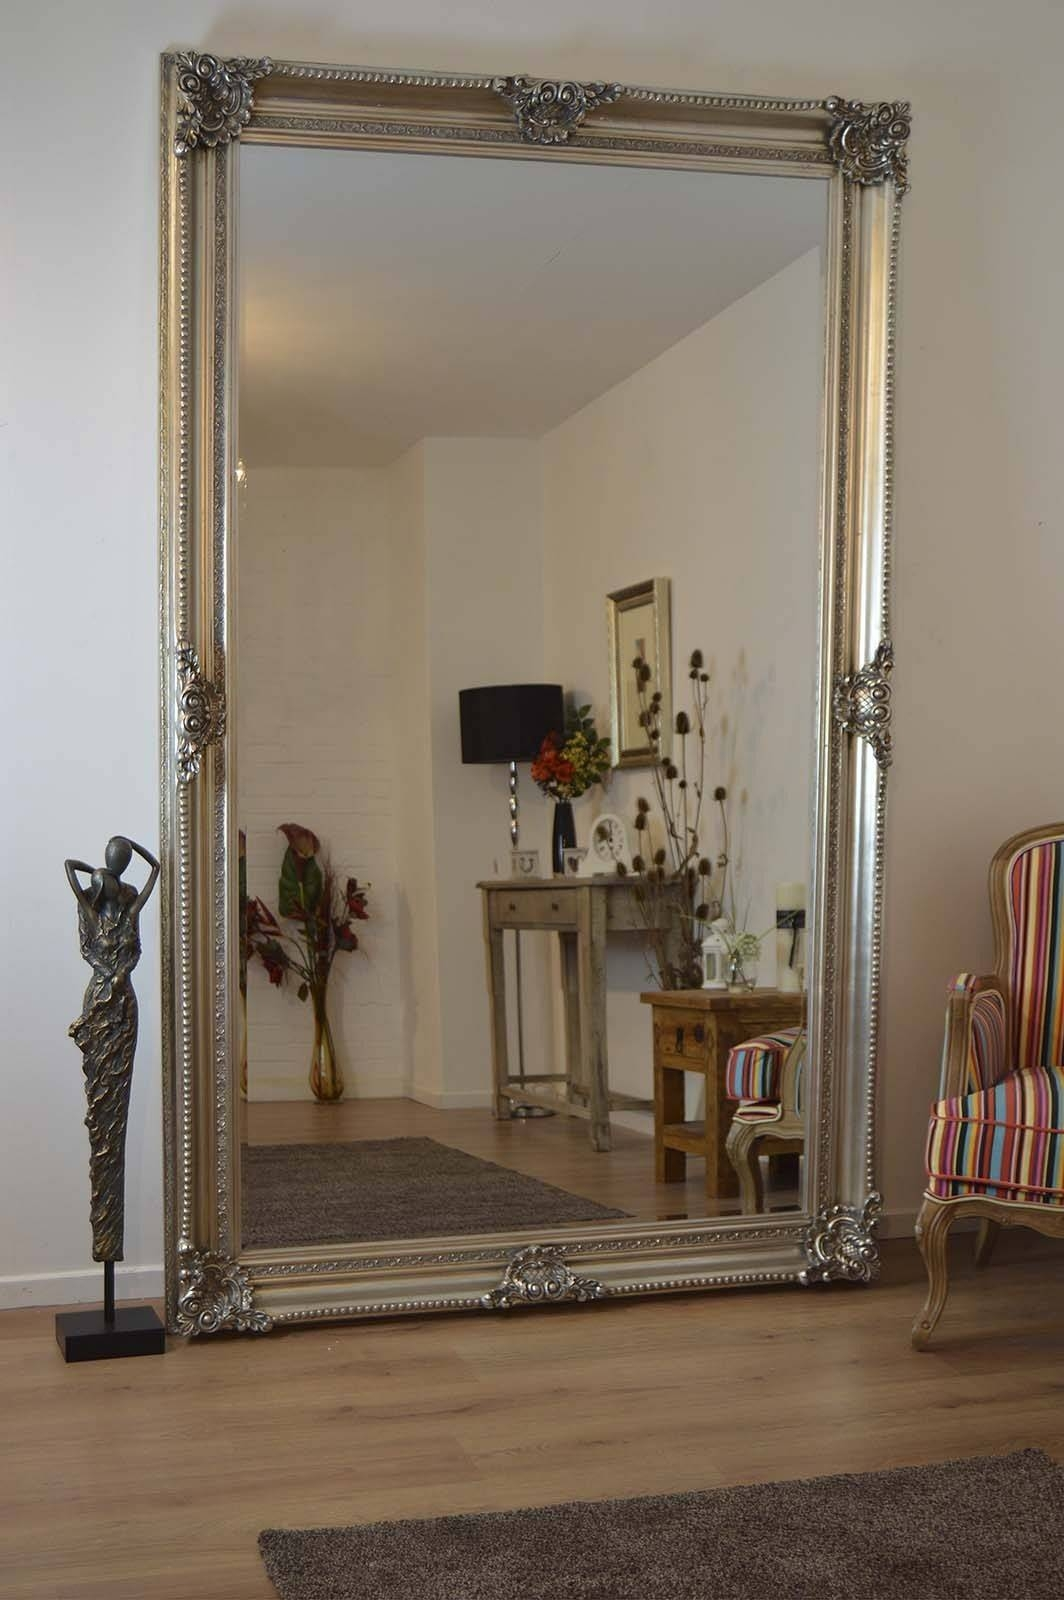 Old Fashioned Wall Mirrors Antique Mirror Wall Covering Vintage for Large Antique Mirrors (Image 14 of 15)